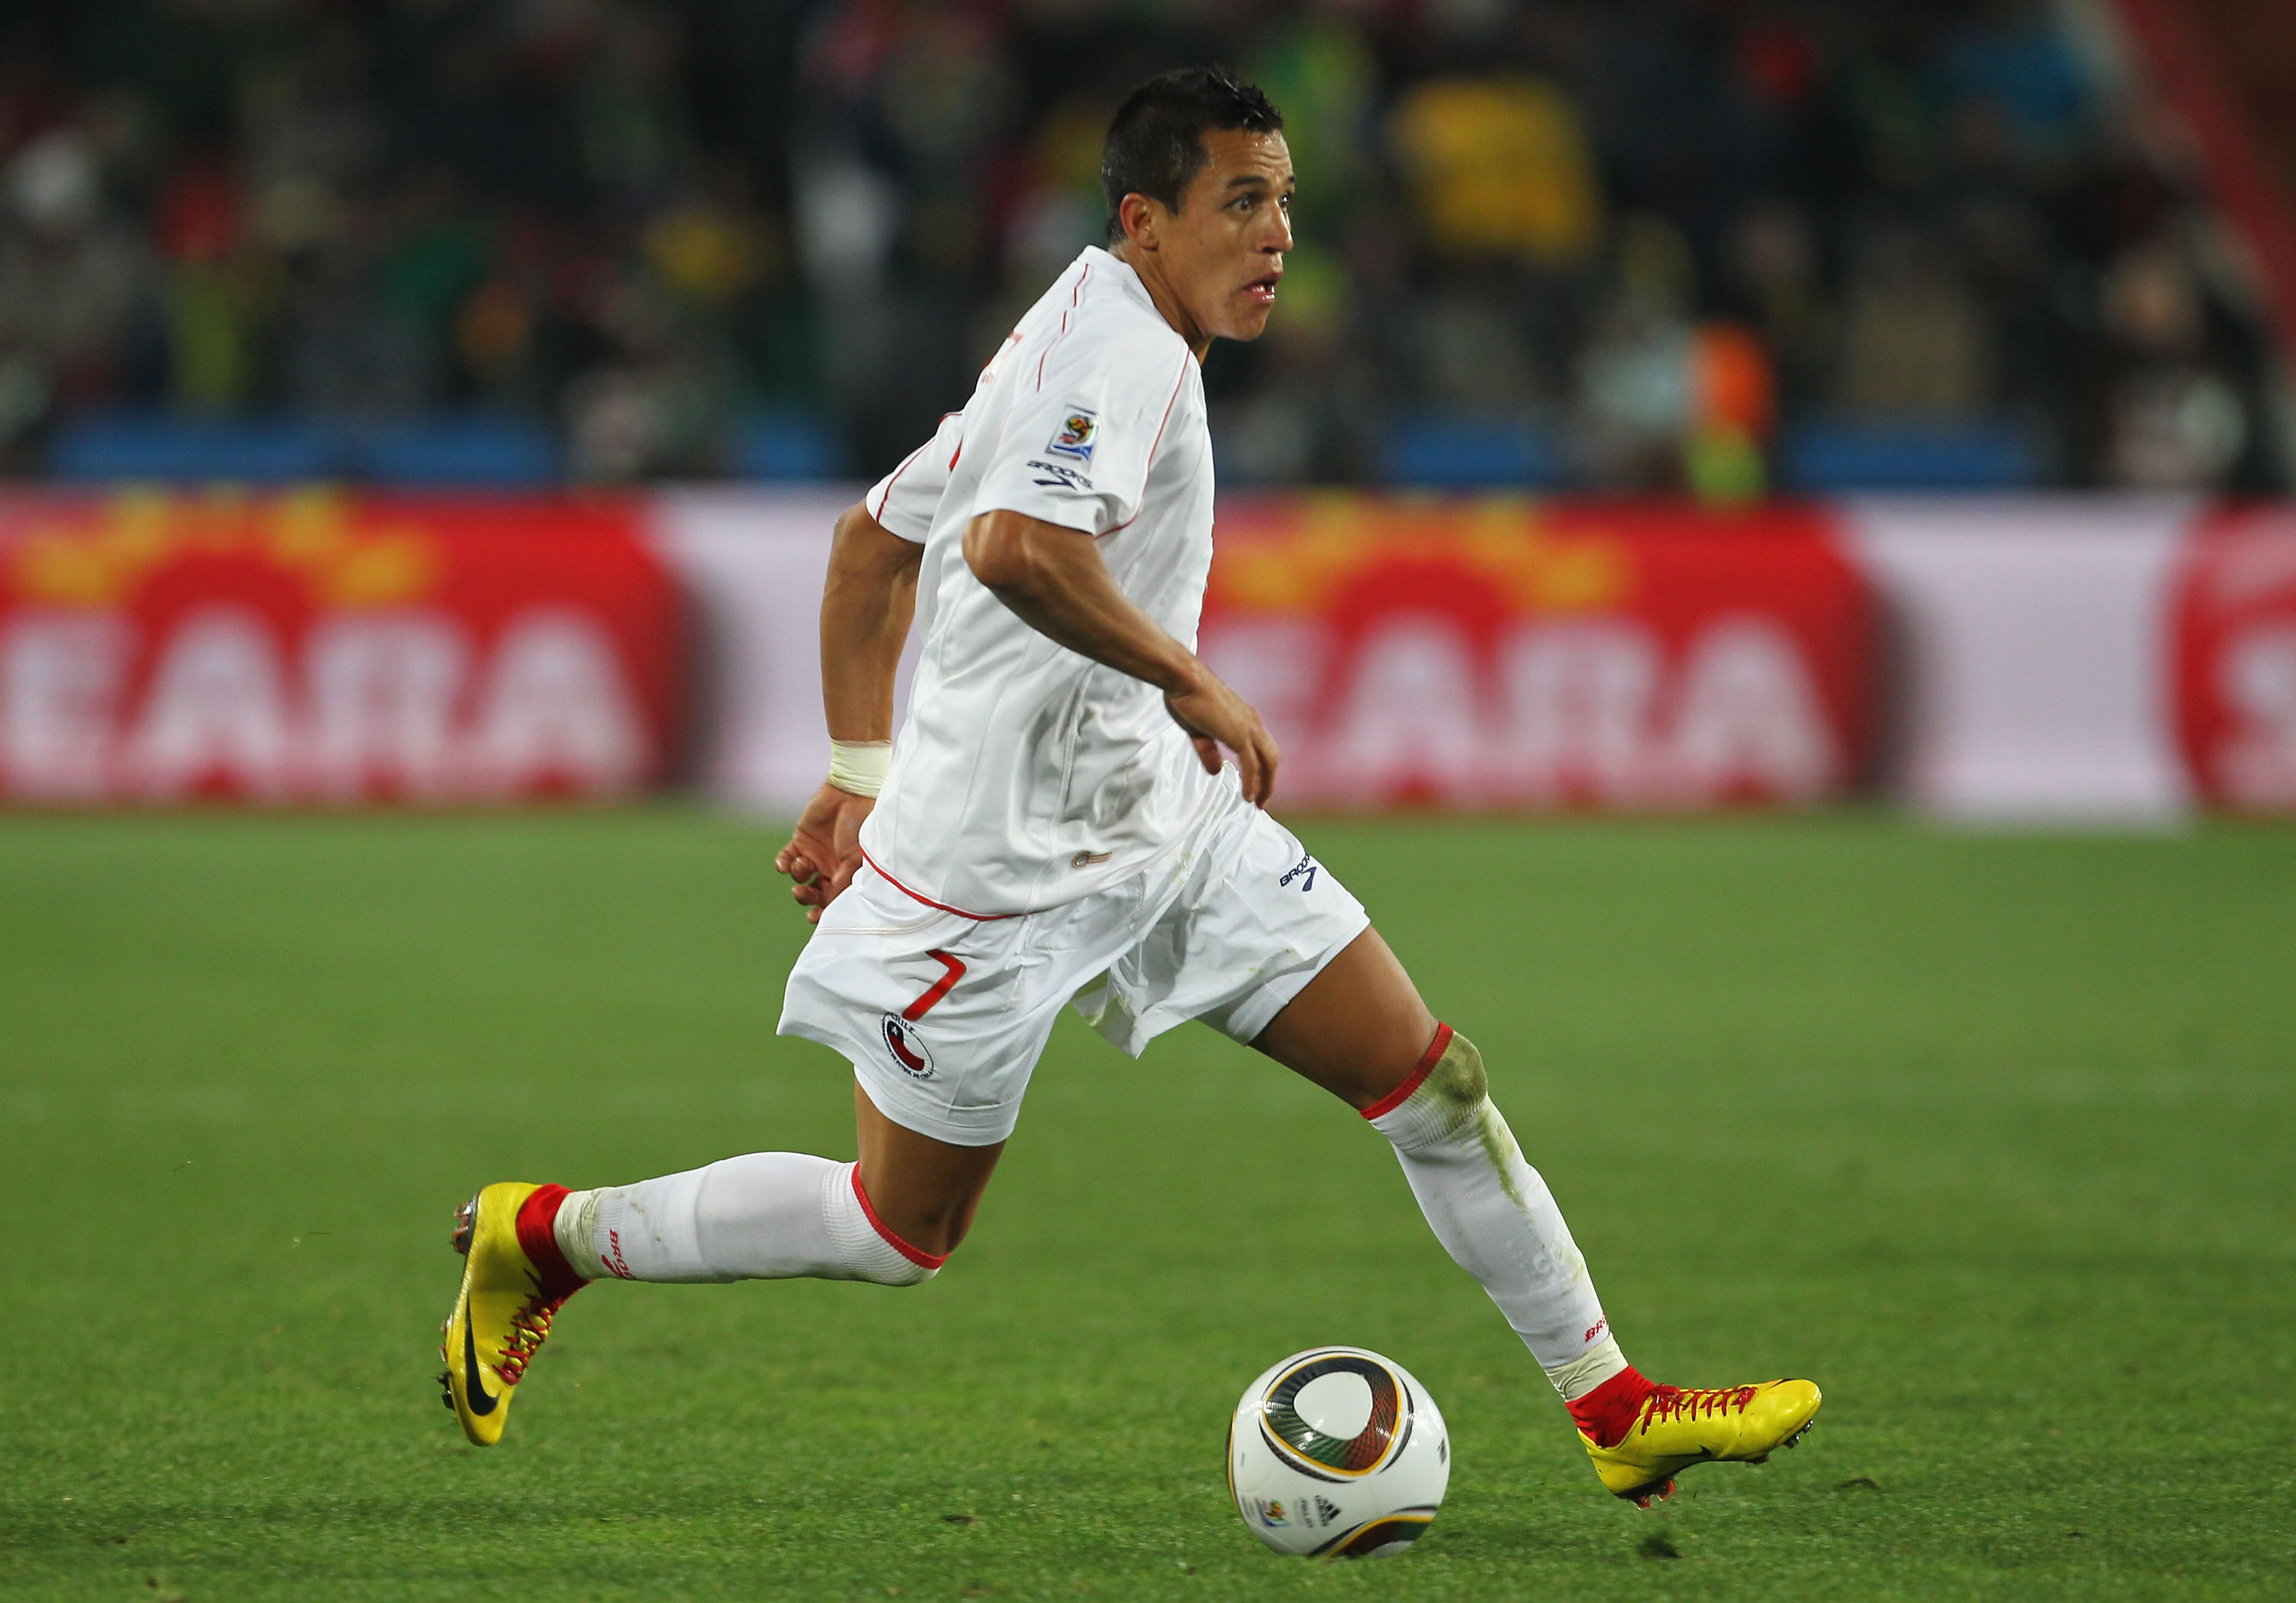 JOHANNESBURG, SOUTH AFRICA - JUNE 28:  Alexis Sanchez of Chile runs with the ball during the 2010 FIFA World Cup South Africa Round of Sixteen match between Brazil and Chile at Ellis Park Stadium on June 28, 2010 in Johannesburg, South Africa.  (Photo by